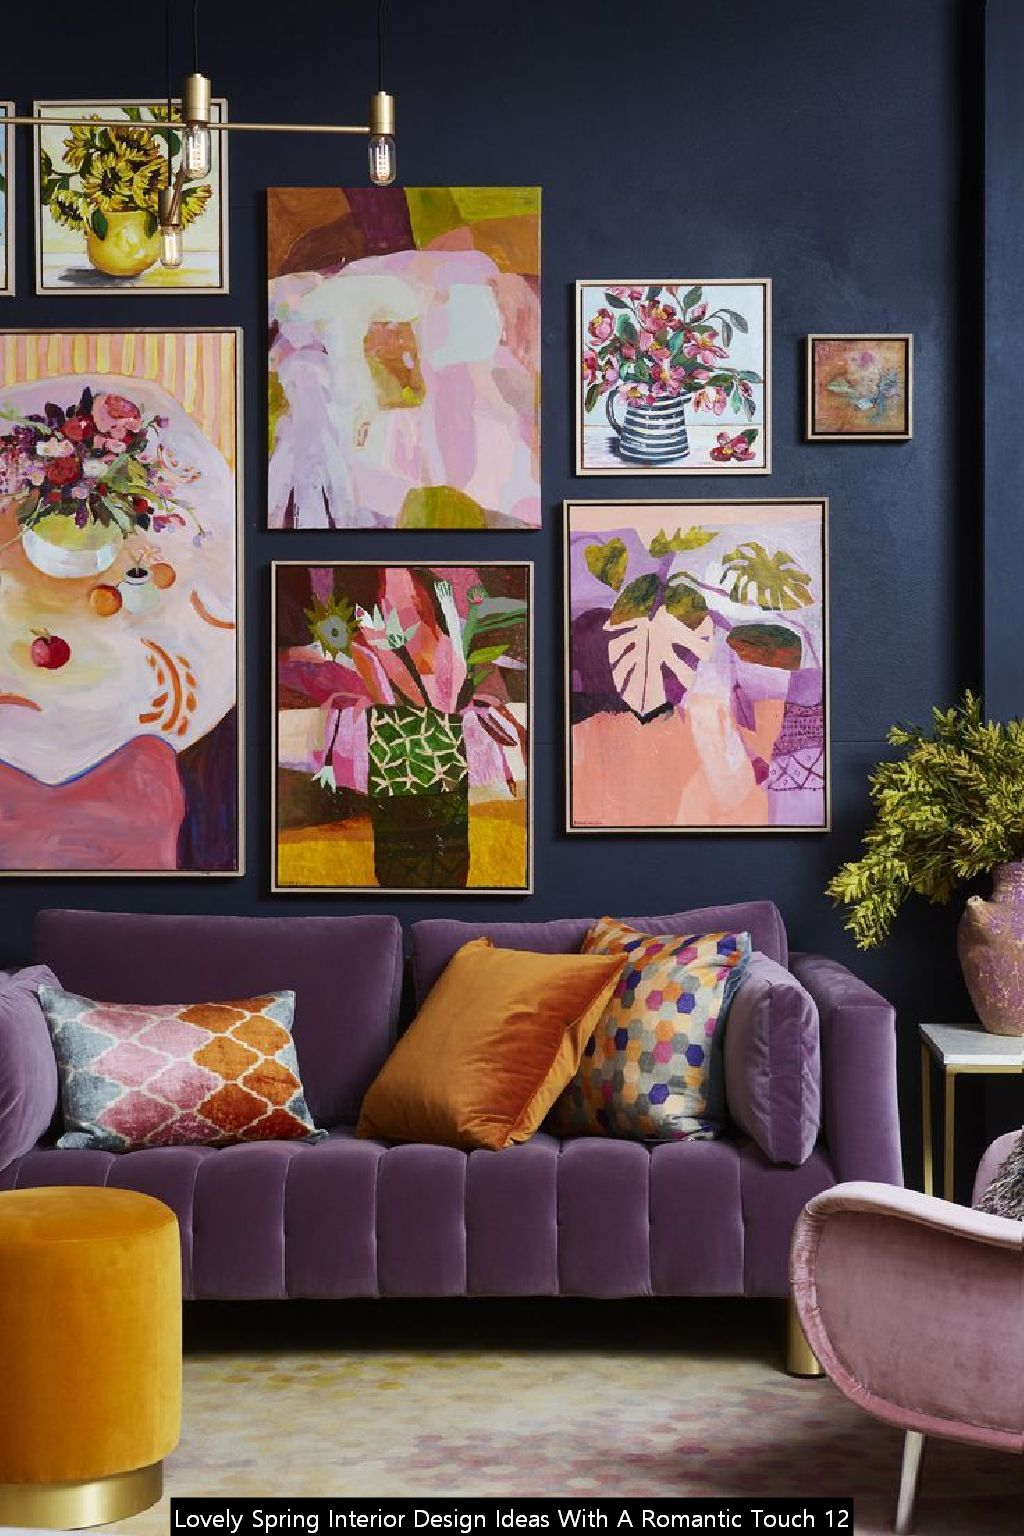 Lovely Spring Interior Design Ideas With A Romantic Touch 12